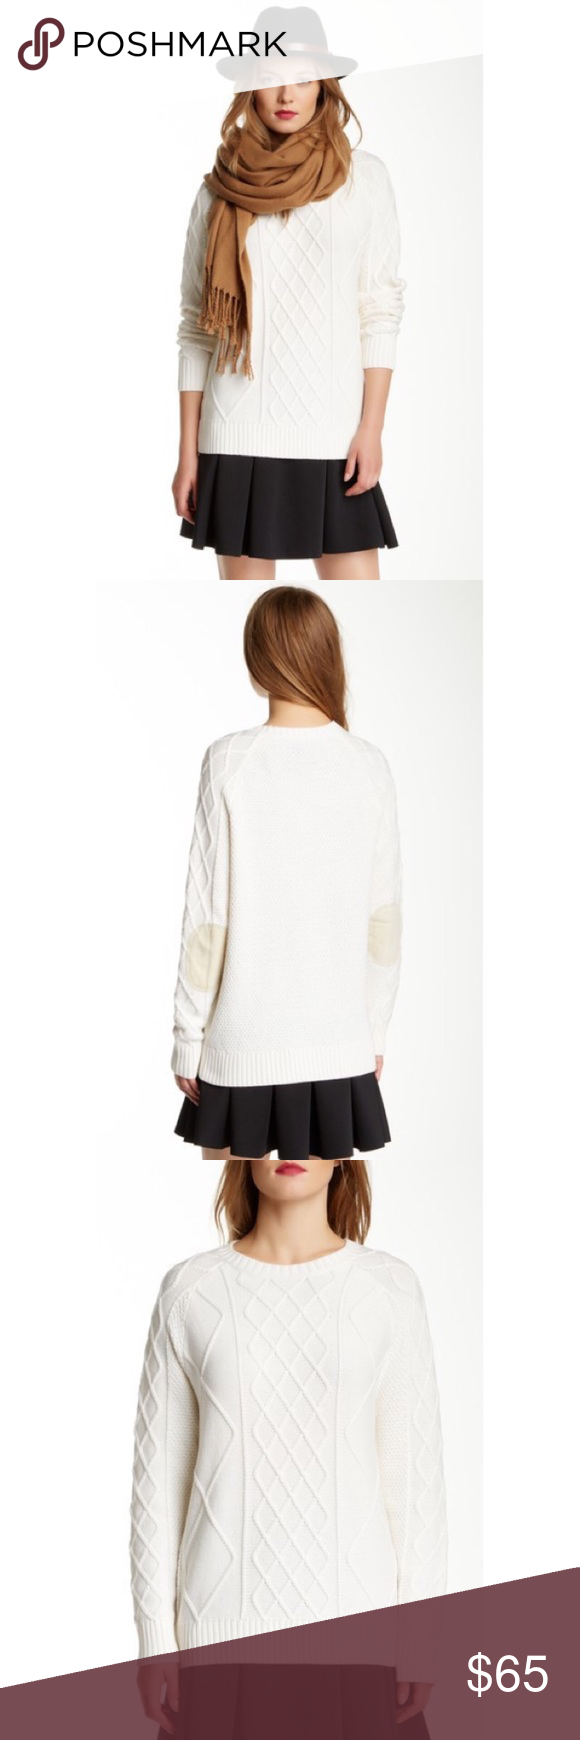 Rachel Zoe Rocco Cable Knit Sweater New without tag, Size Small                                    Details: - Crew neck  - Long sleeves with ribbed cuffs - Ribbed hem Fiber Content: 85% cotton, 15% cashmere Rachel Zoe Sweaters